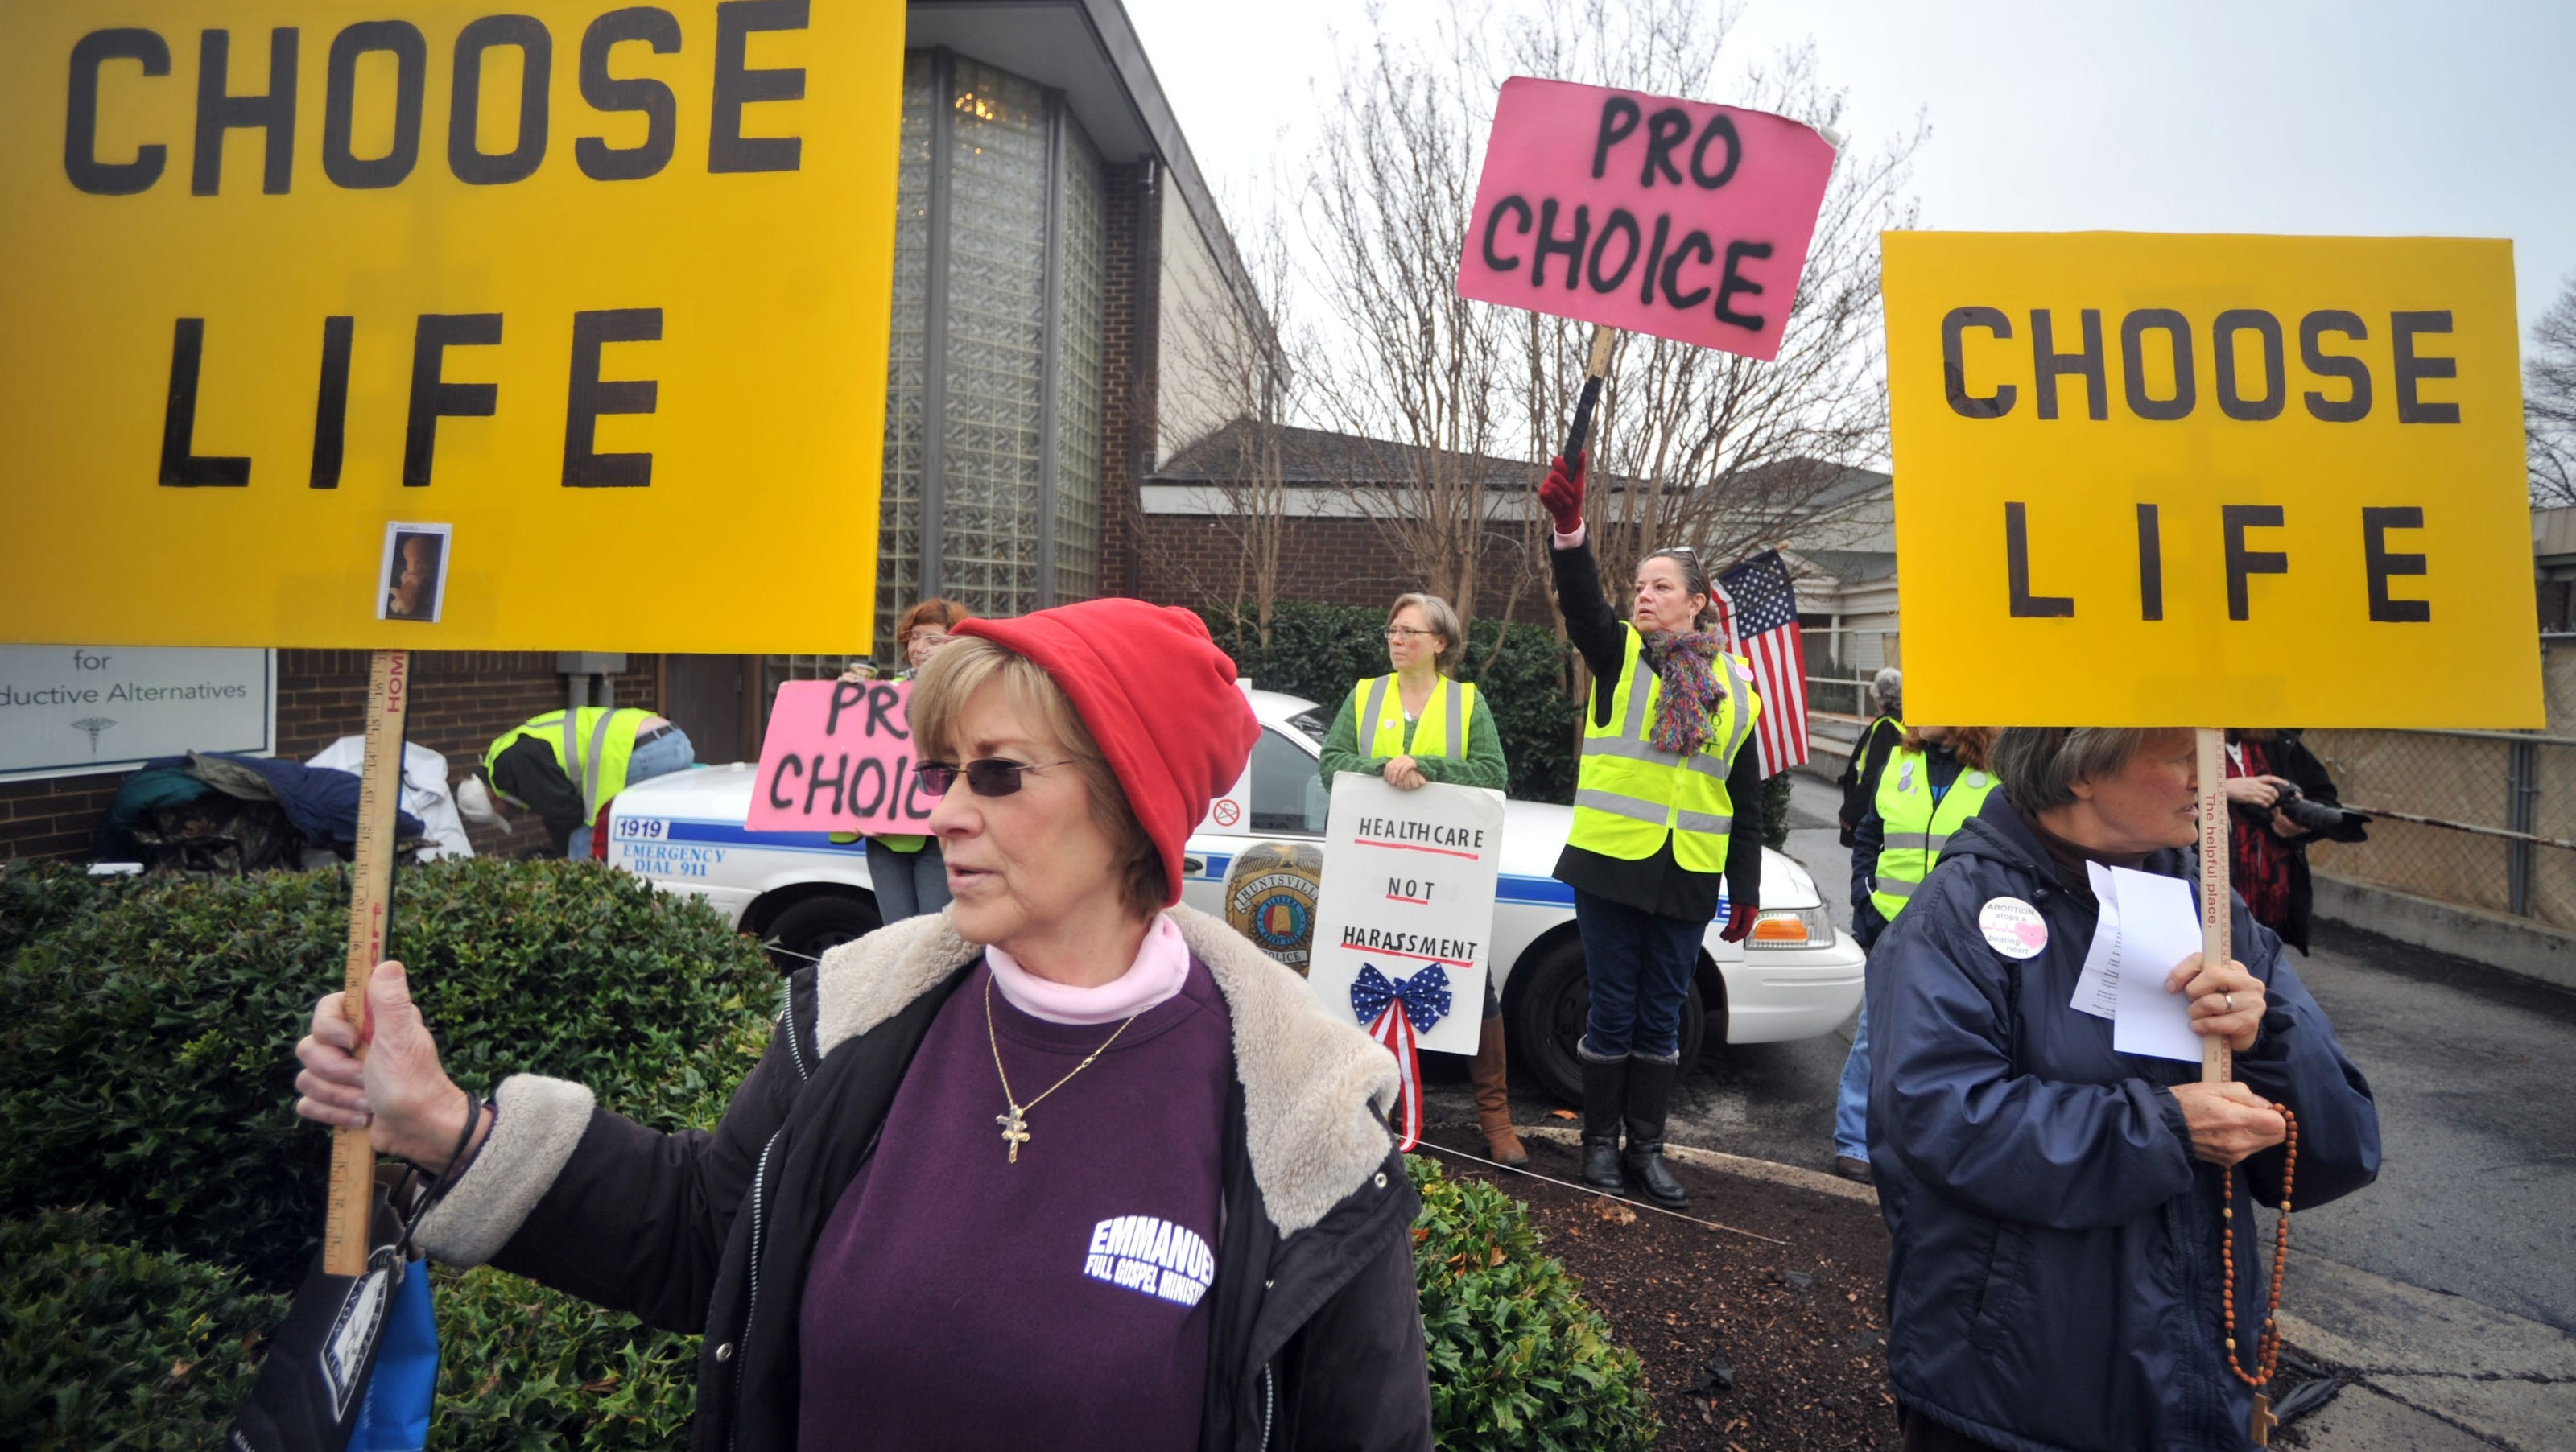 alabama abortion law unconstitutional judge rules